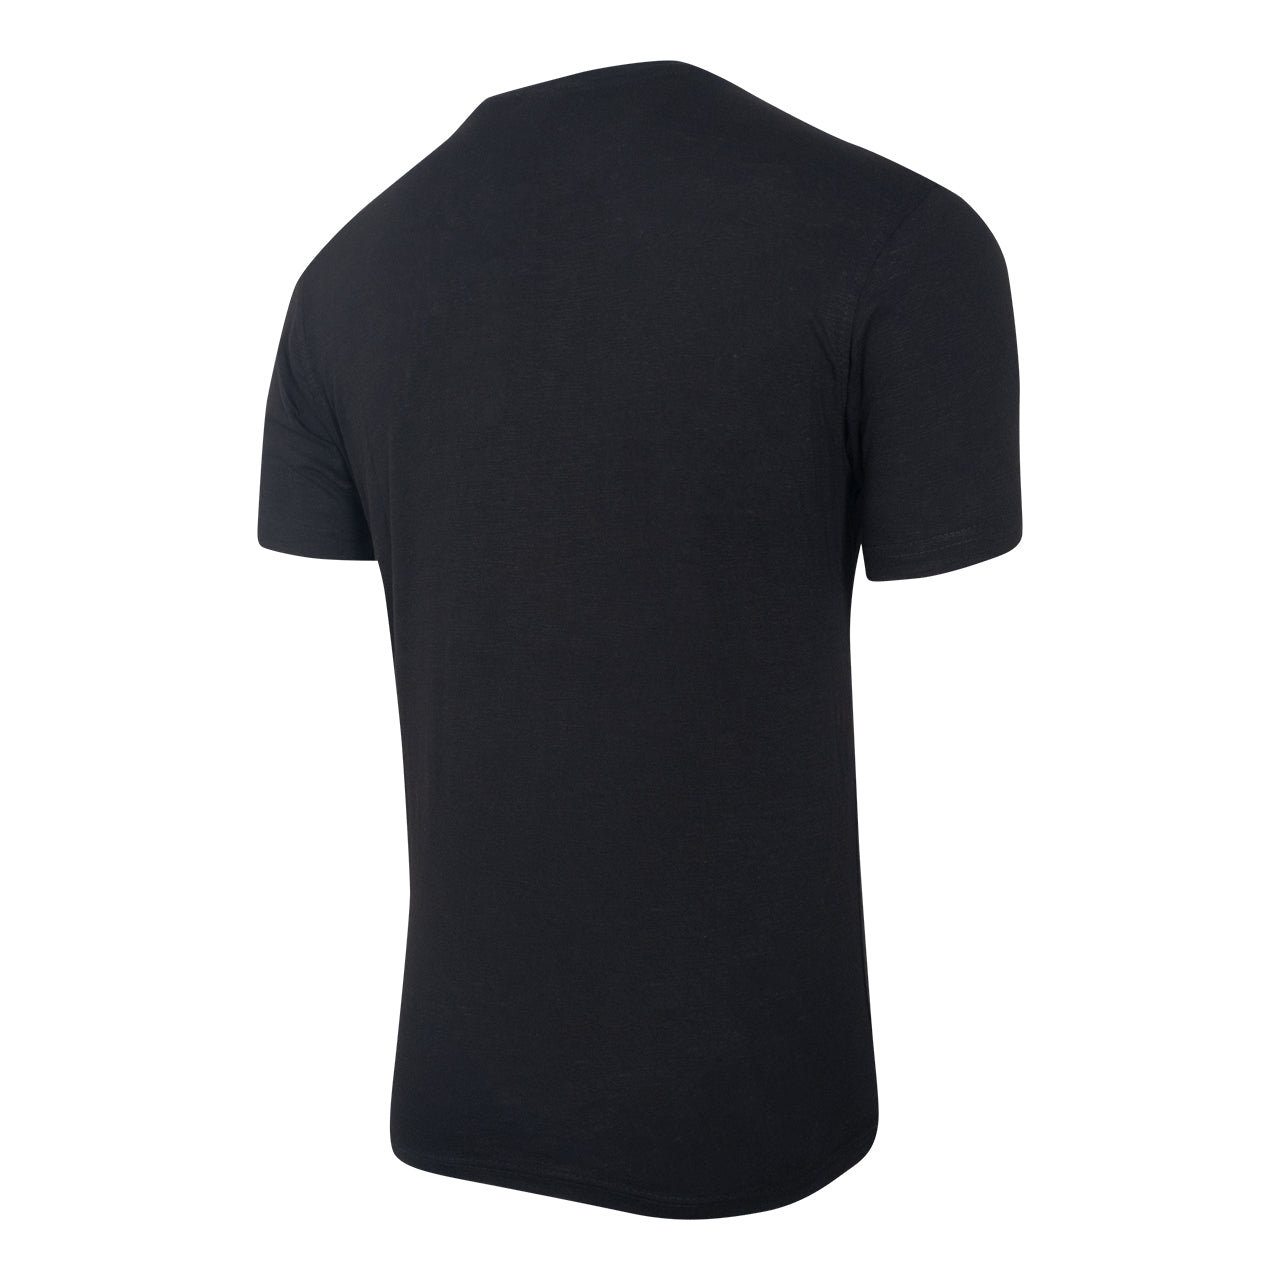 NFFC Mens Black Essential Grafton T-Shirt